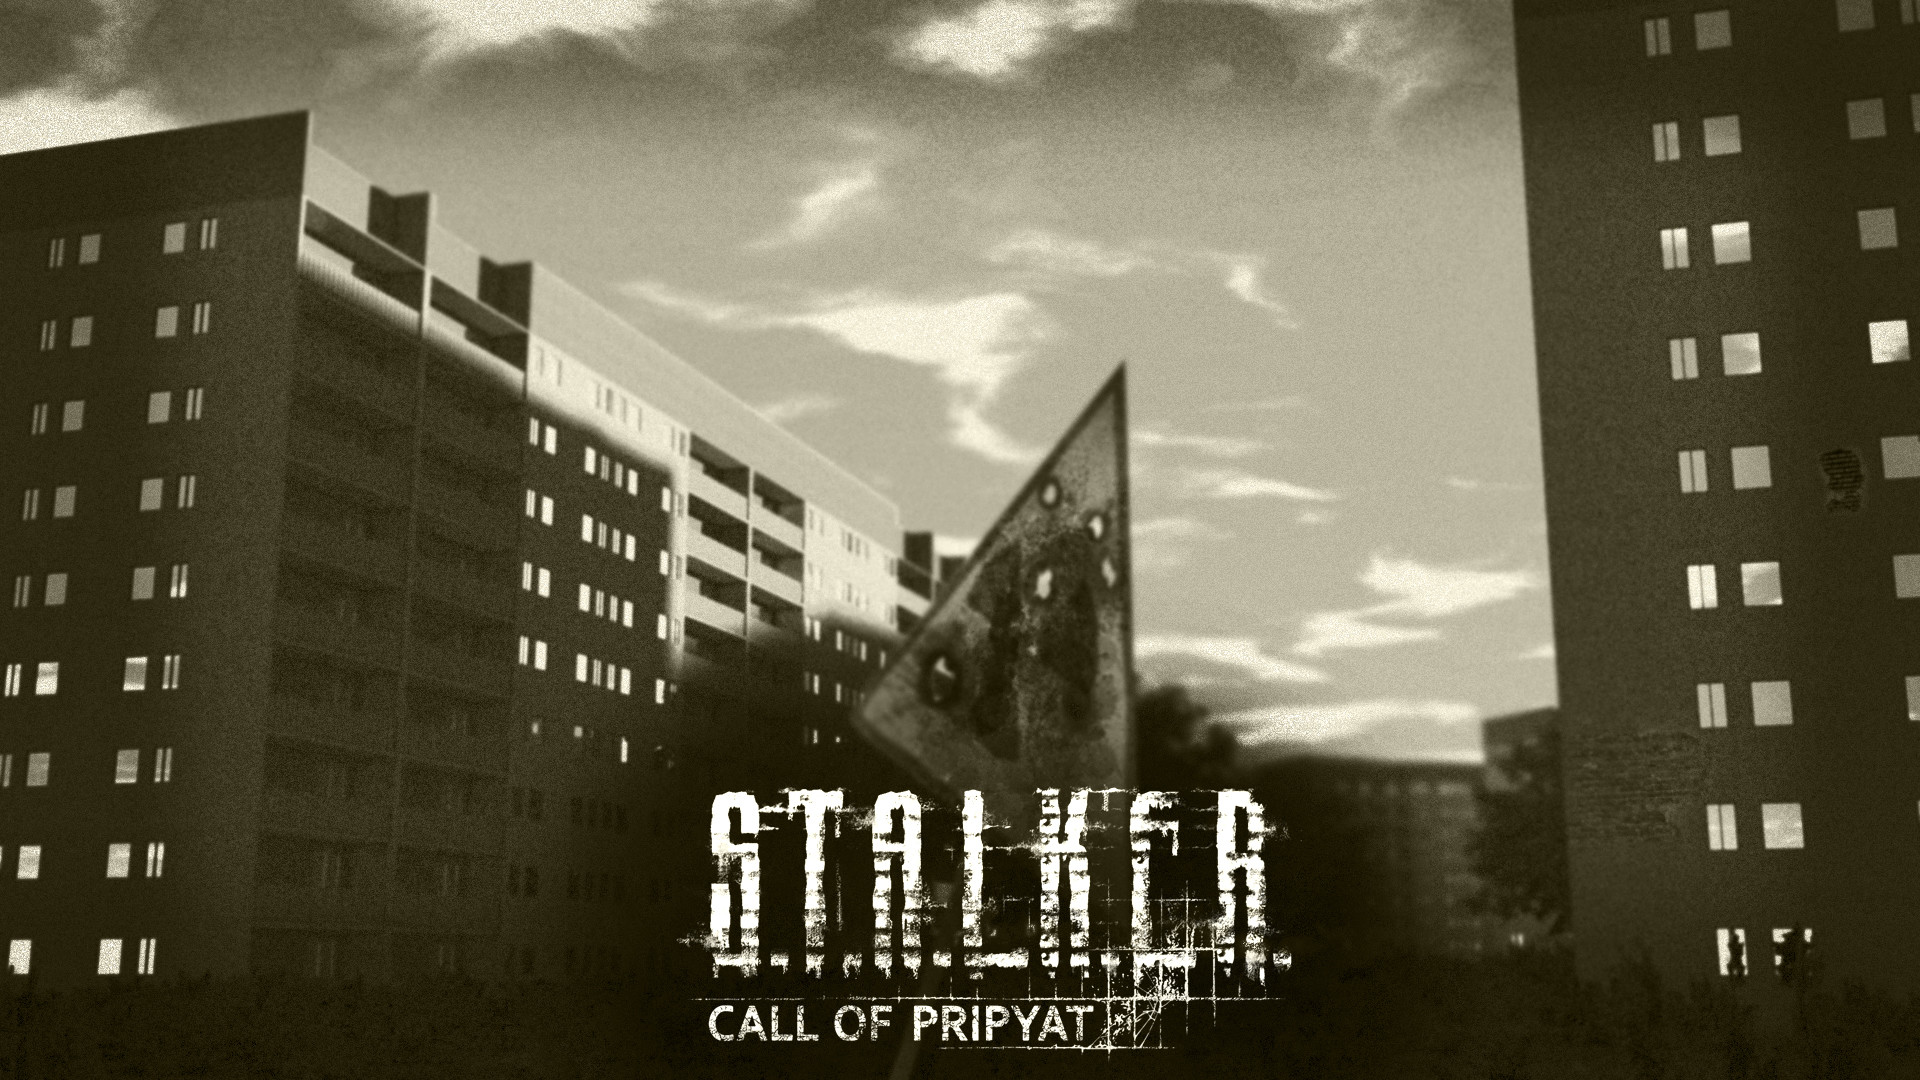 1920x1080 S.T.A.L.K.E.R. Call of Pripyat Wallpaper by Corhellion S.T.A.L.K.E.R. Call  of Pripyat Wallpaper by Corhellion